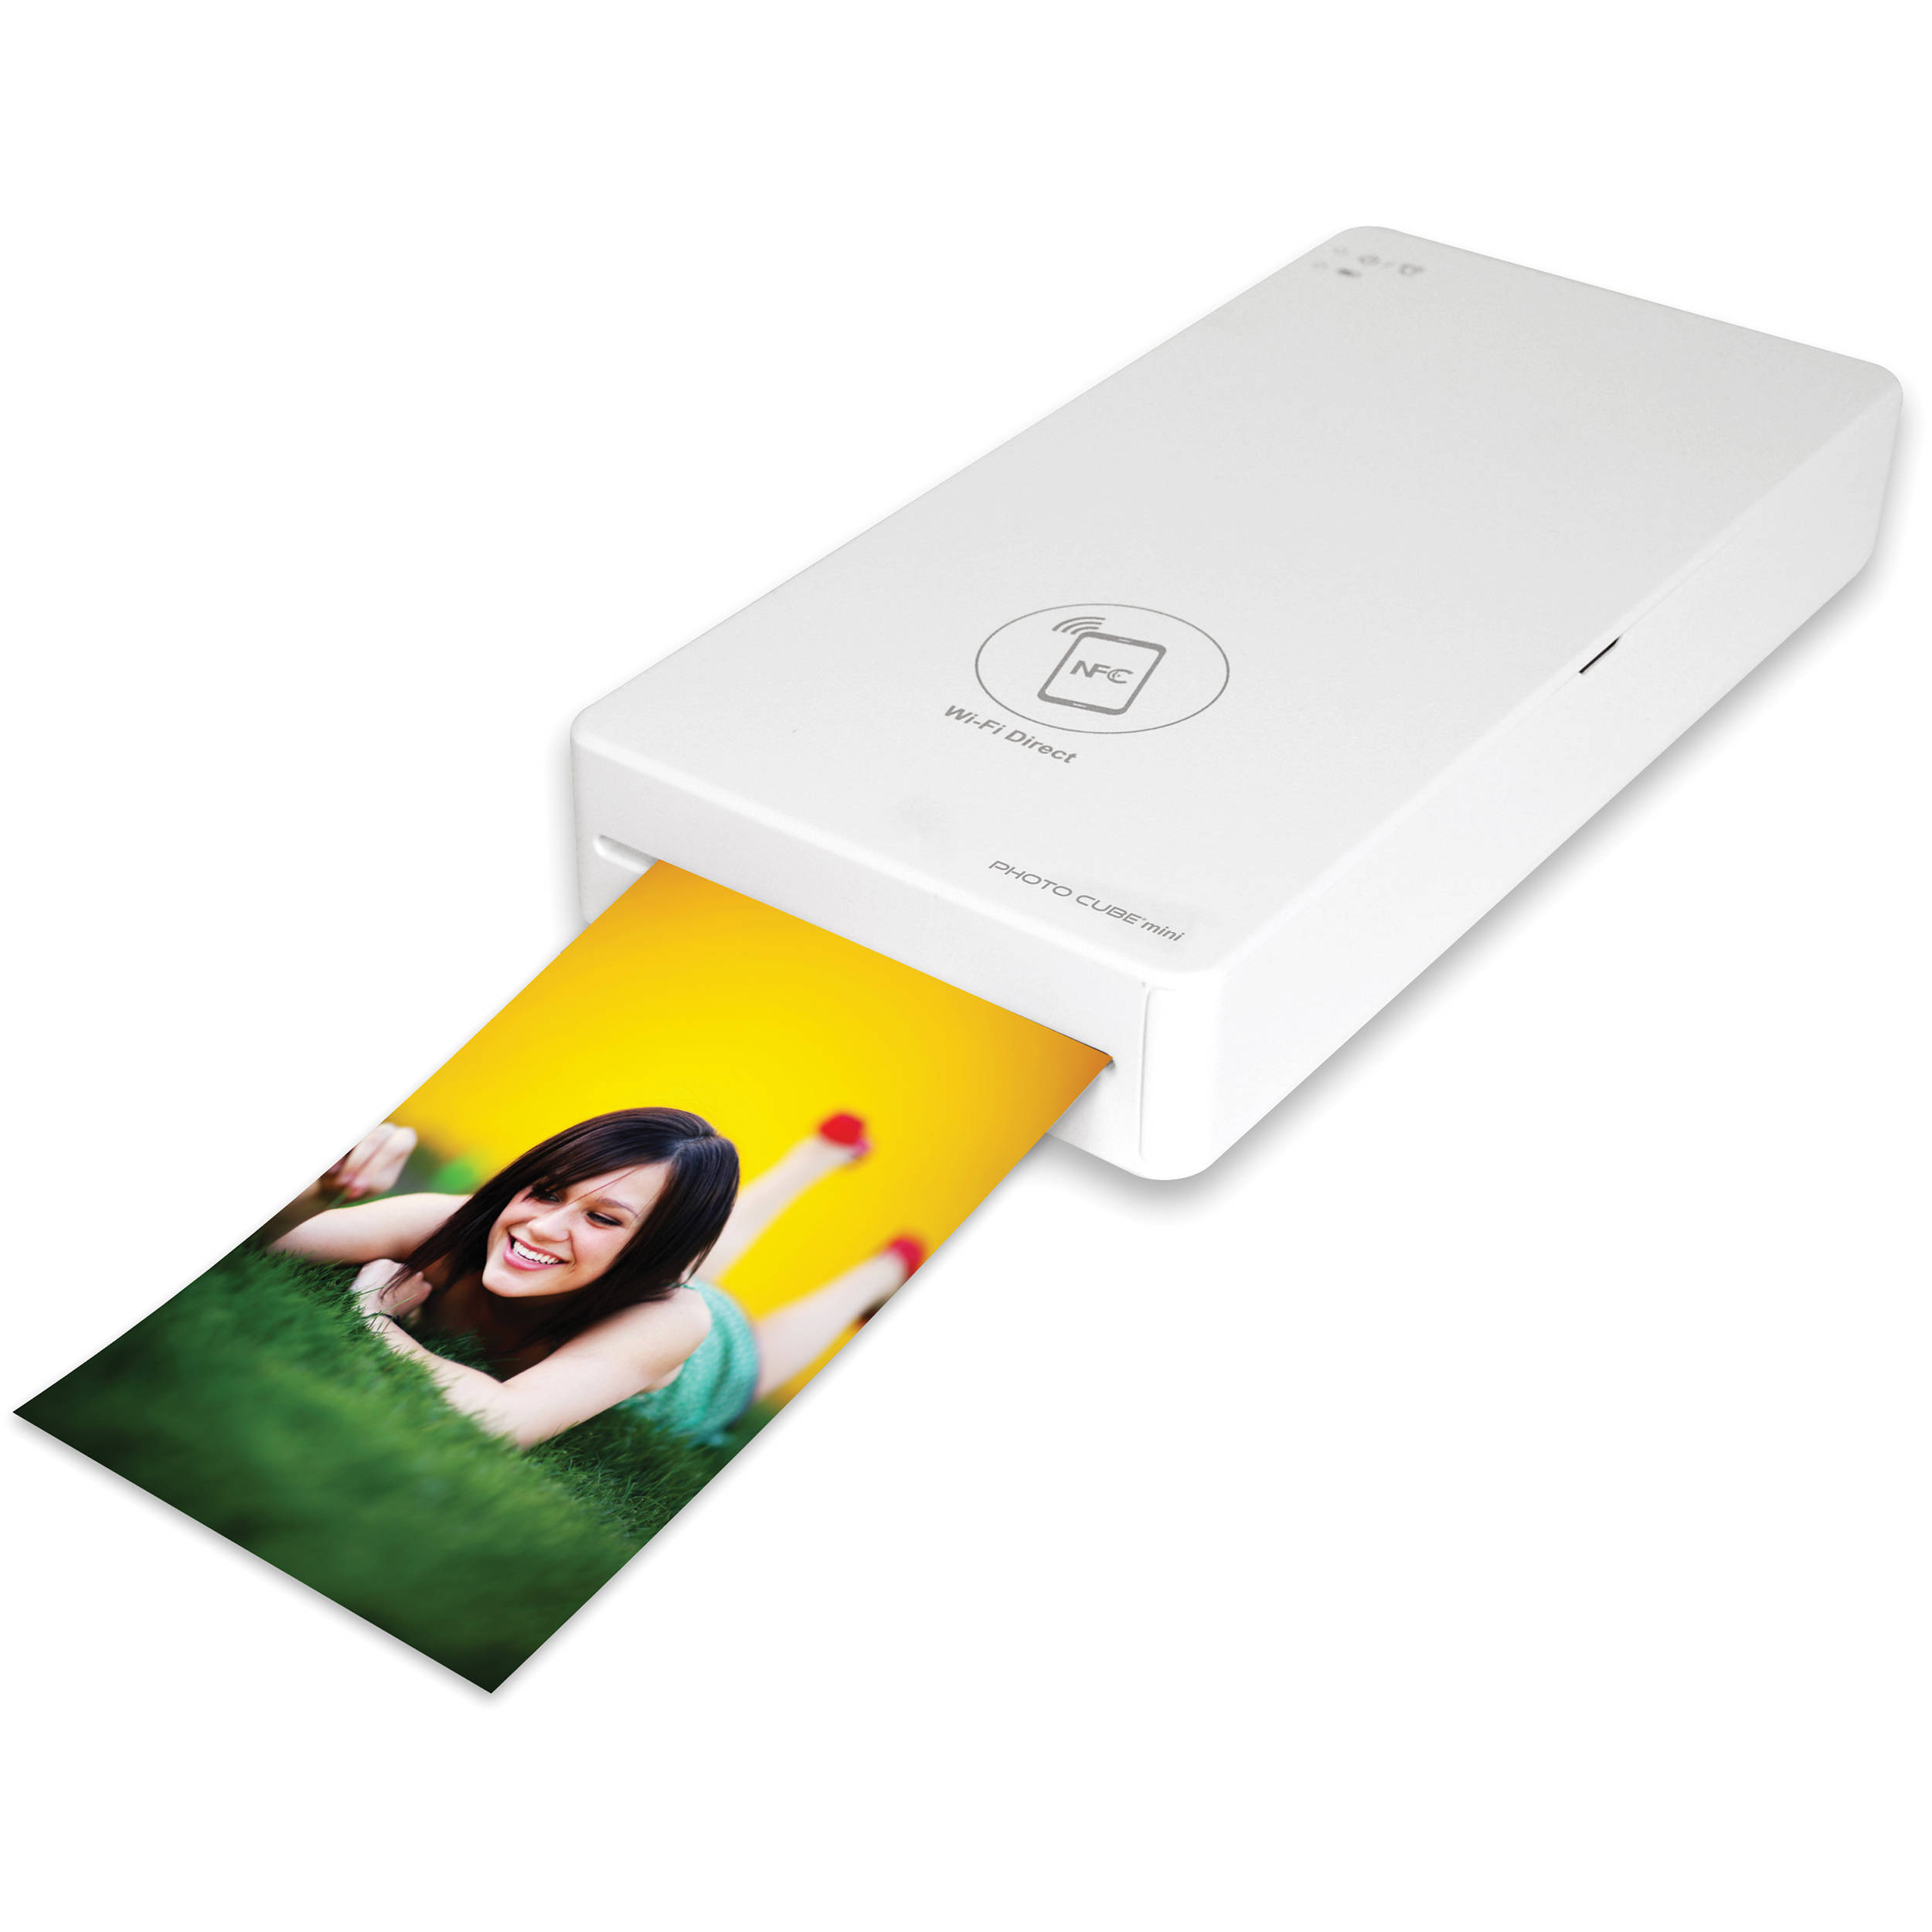 Vupoint Solutions Photo Cube Mini Printer Ipwf P01 Vp Bh Photo